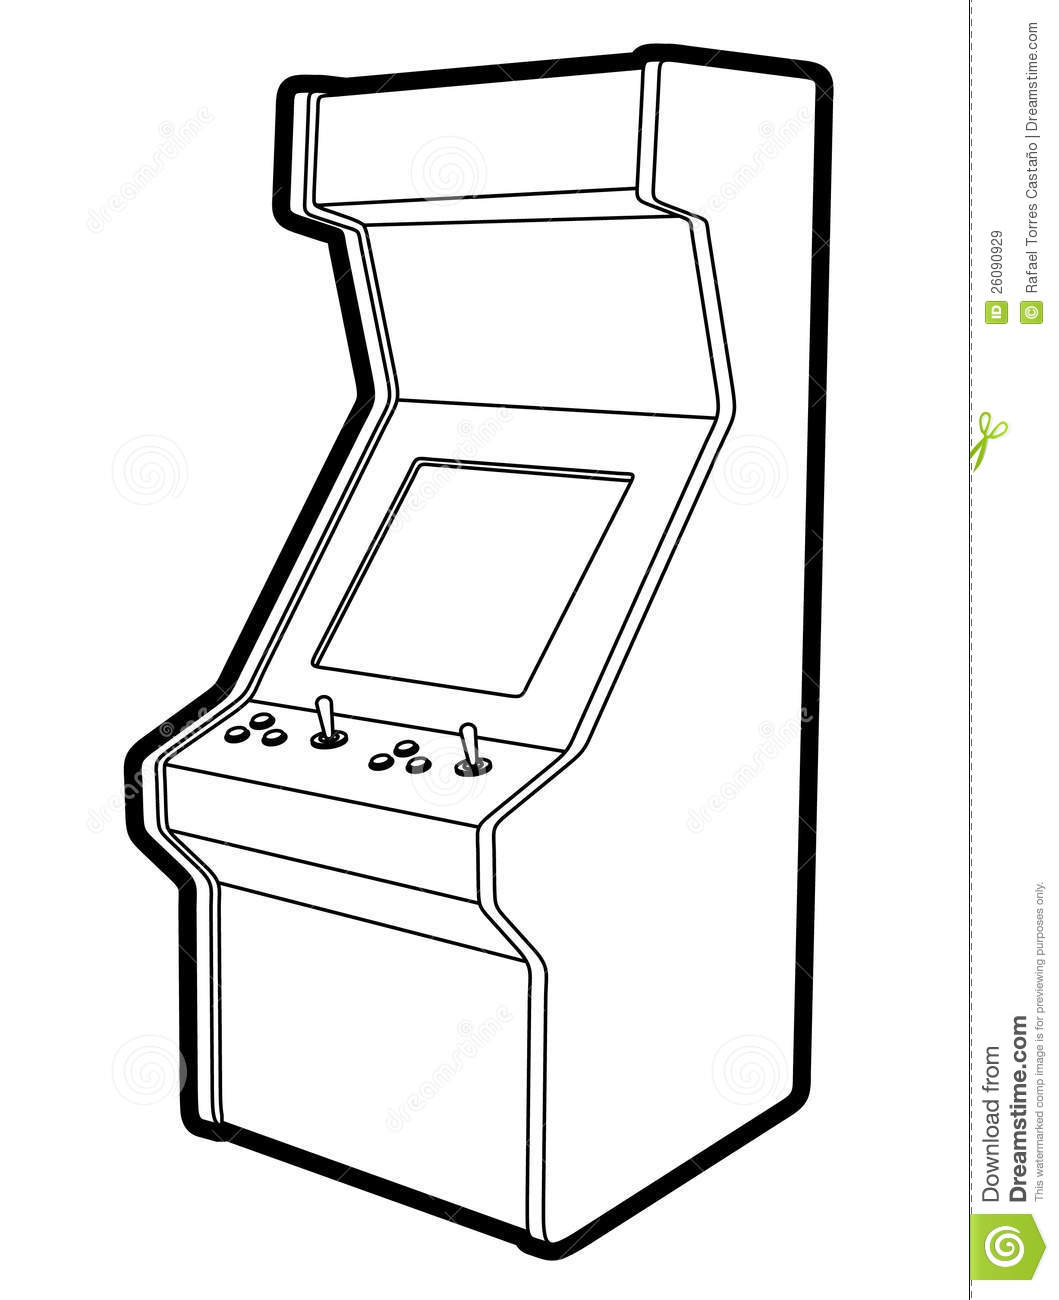 D Line Drawing Game : Retro game machine stock vector illustration of